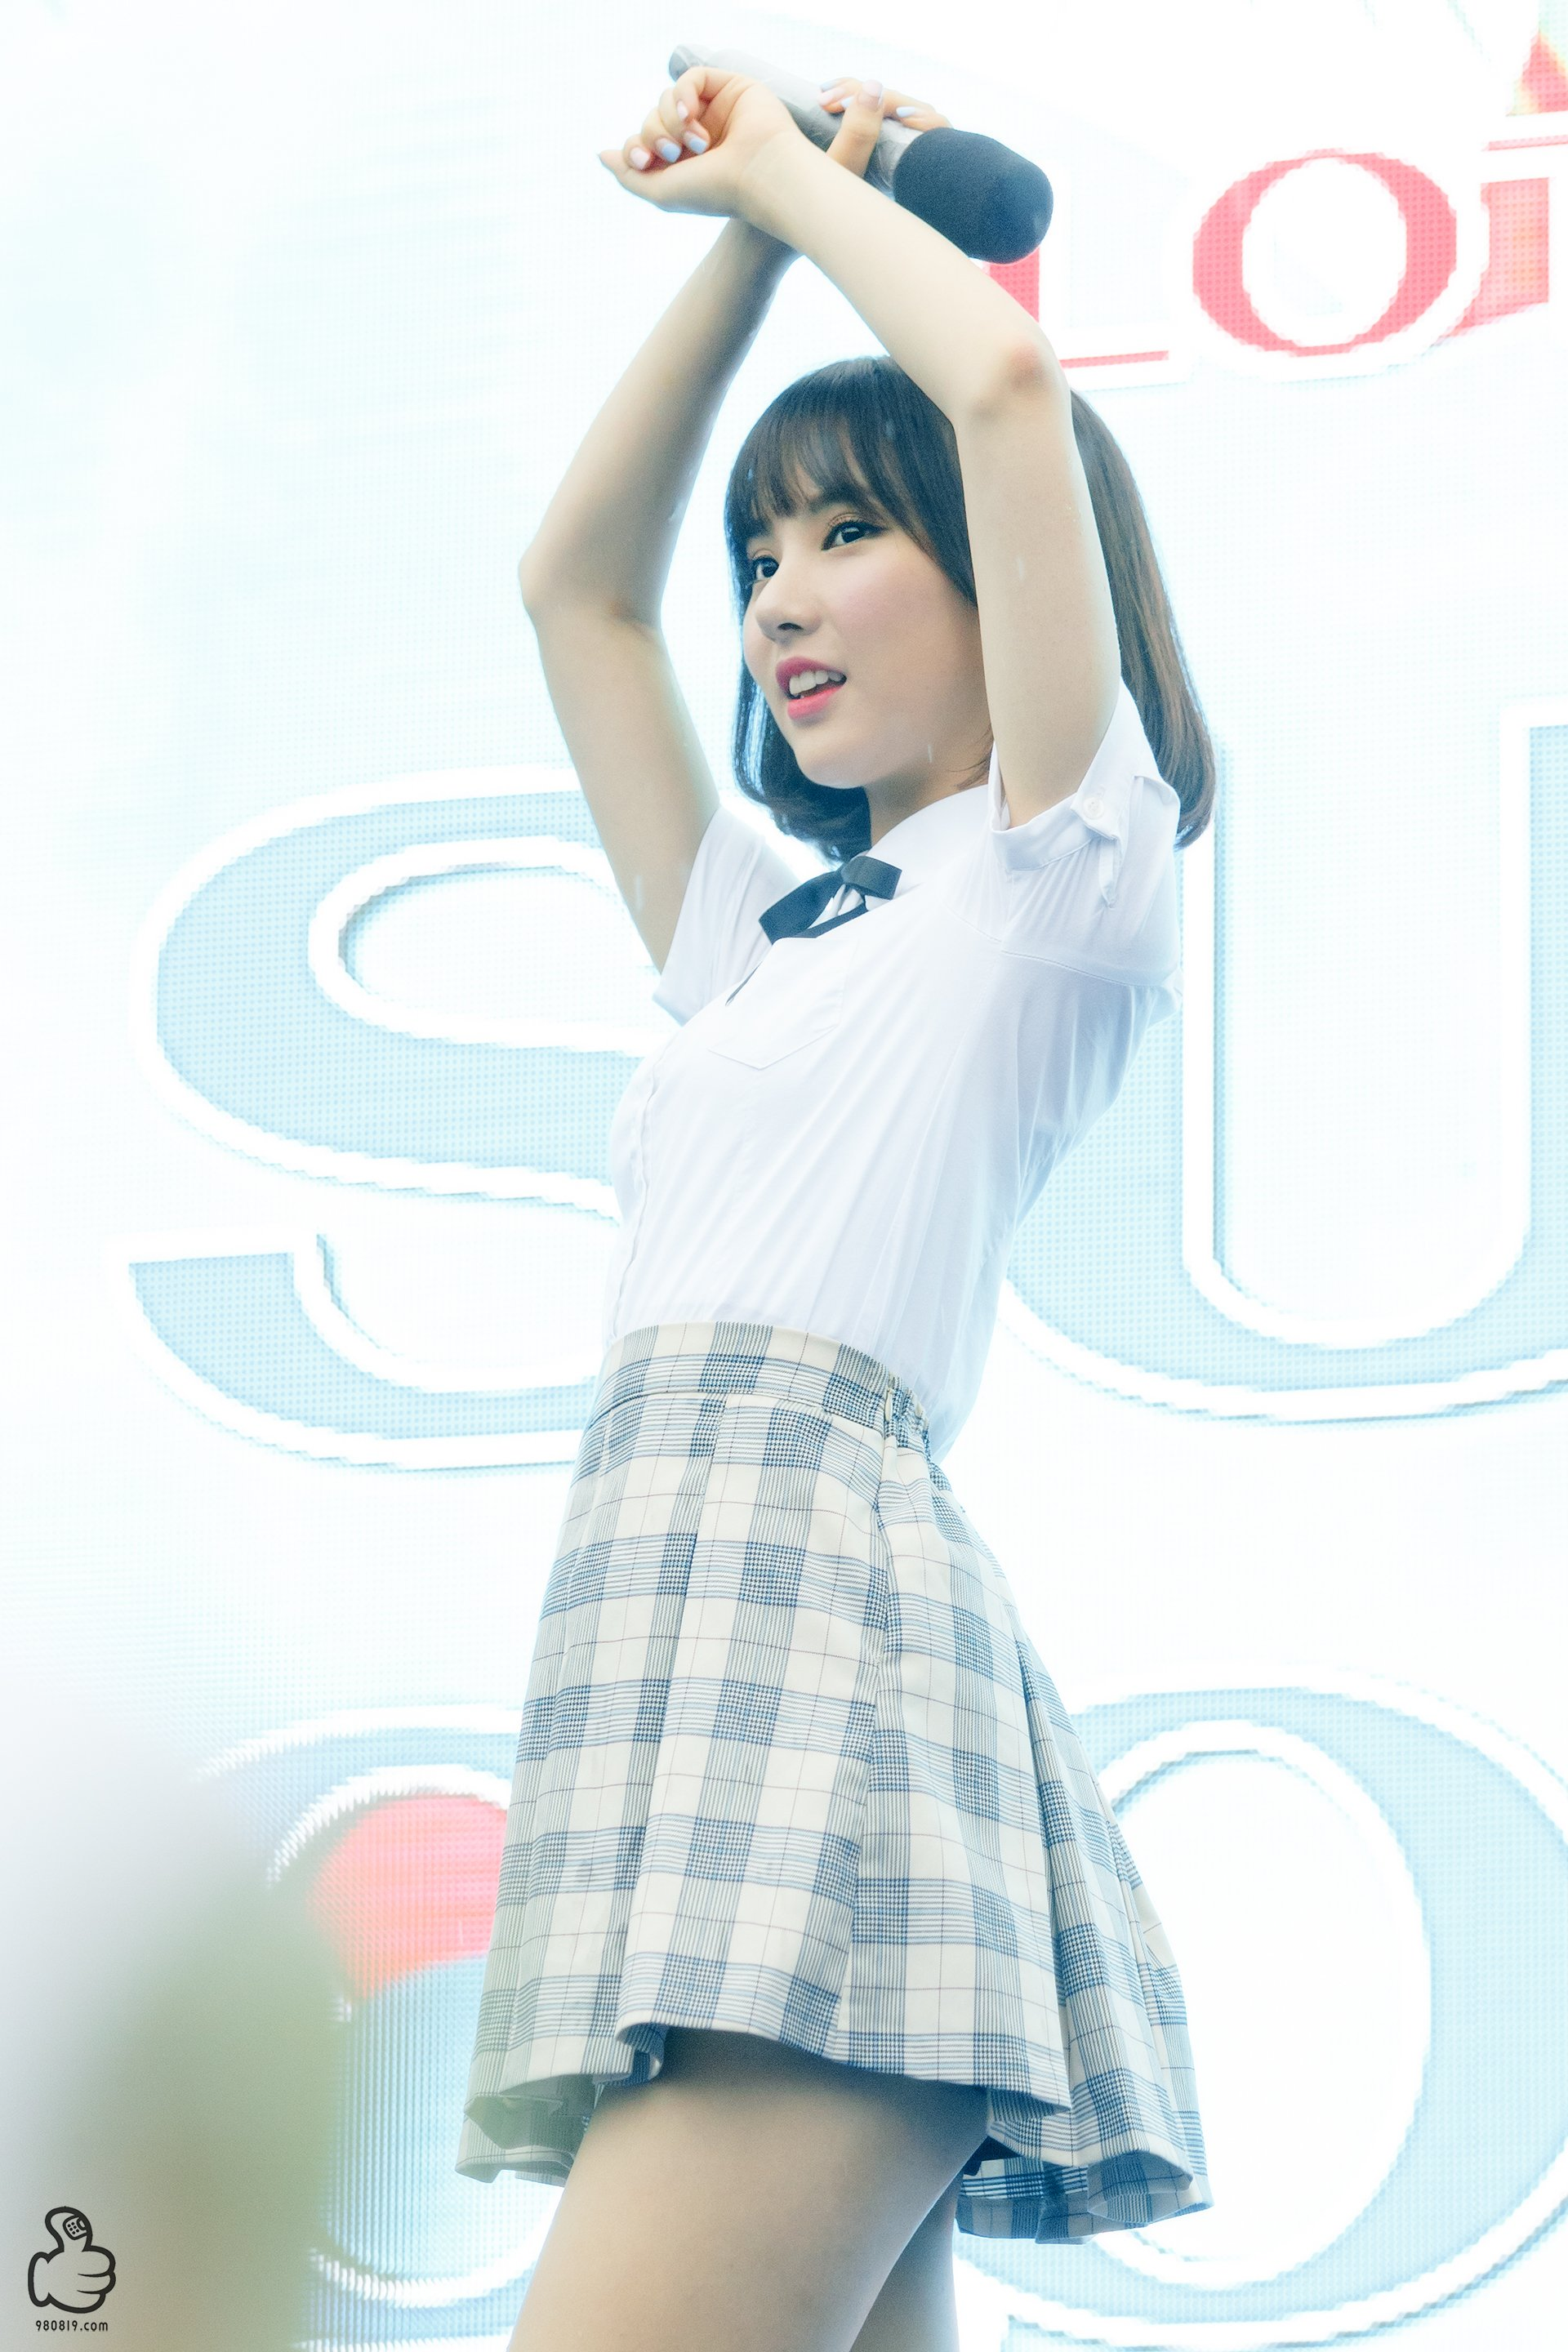 Jung Yerin Android/iPhone Wallpaper #124418 - Asiachan